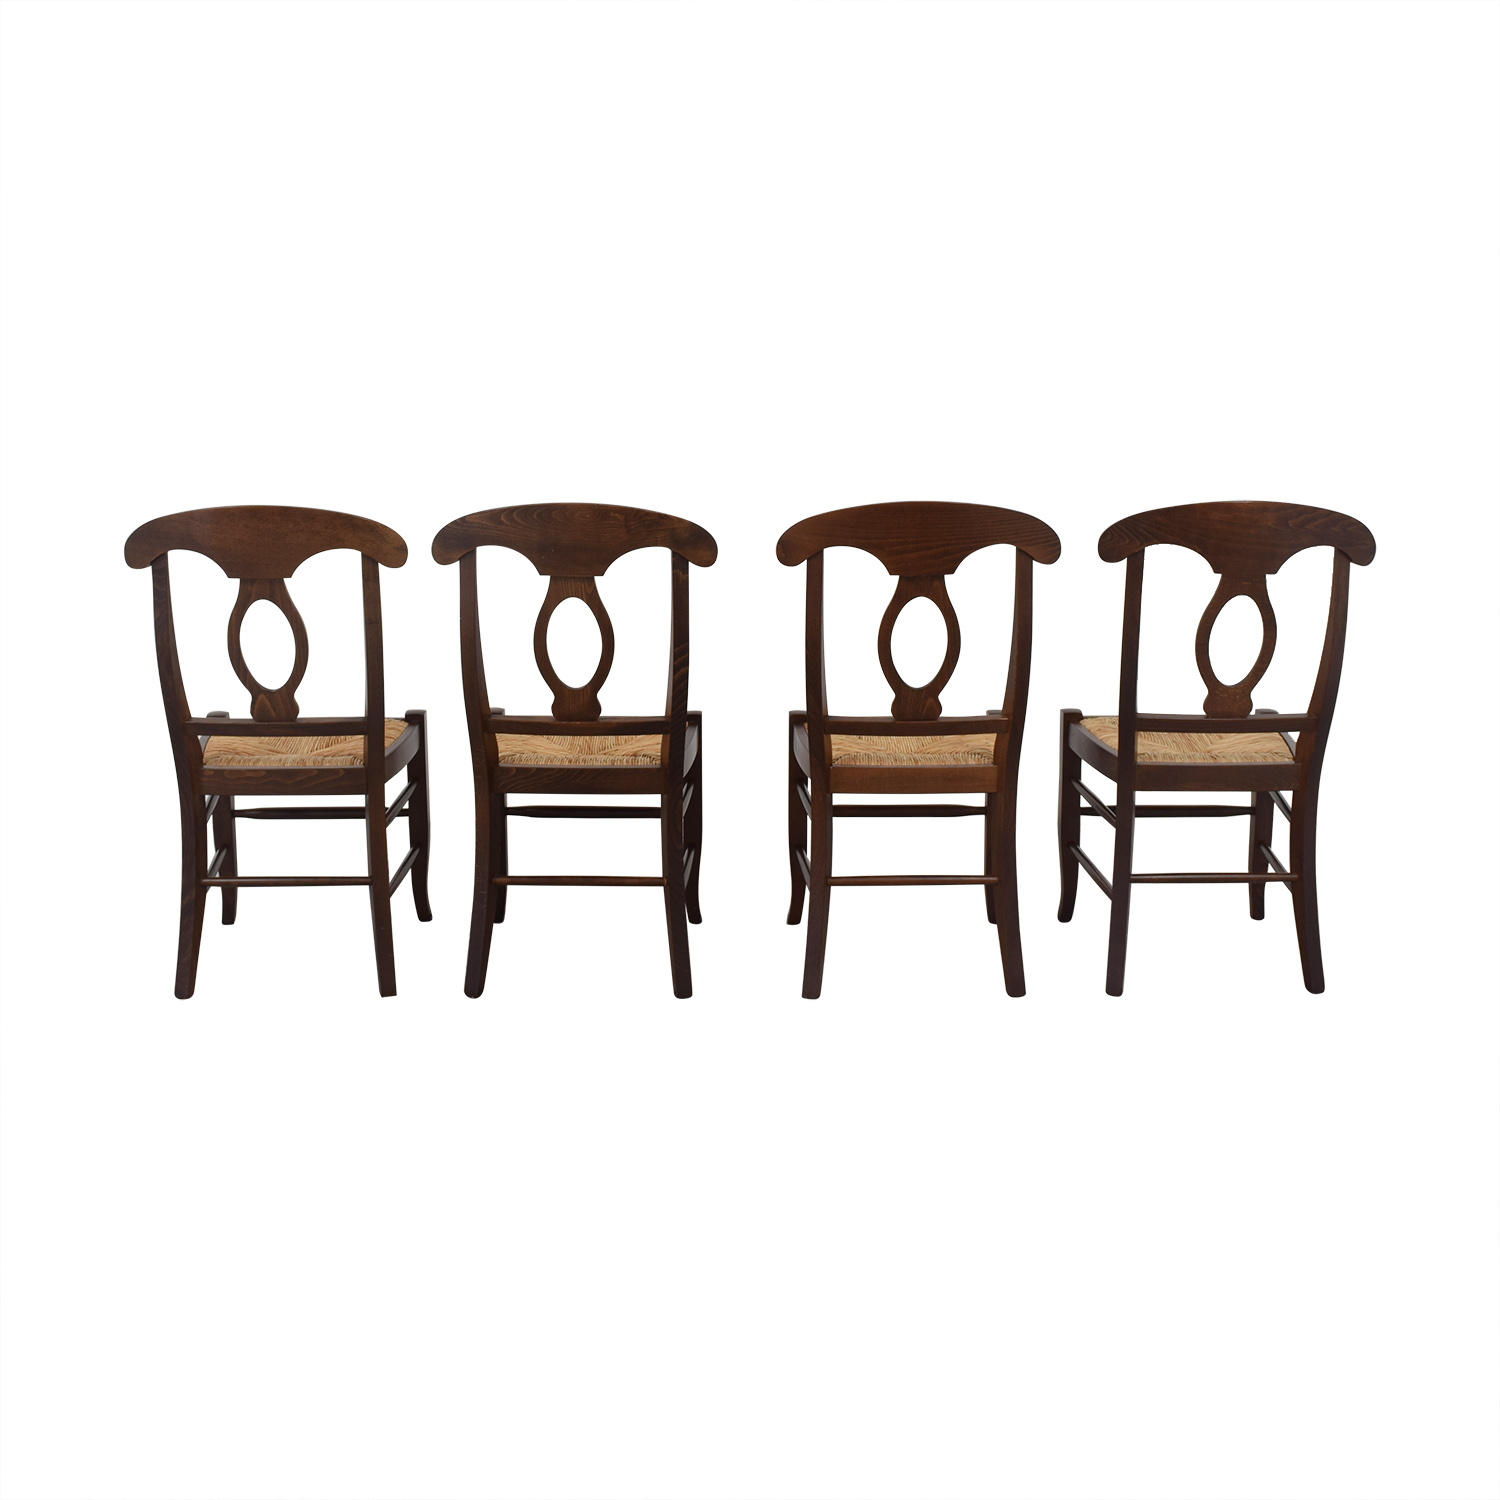 shop Pottery Barn Pottery Barn Napoleon Dining Chairs online